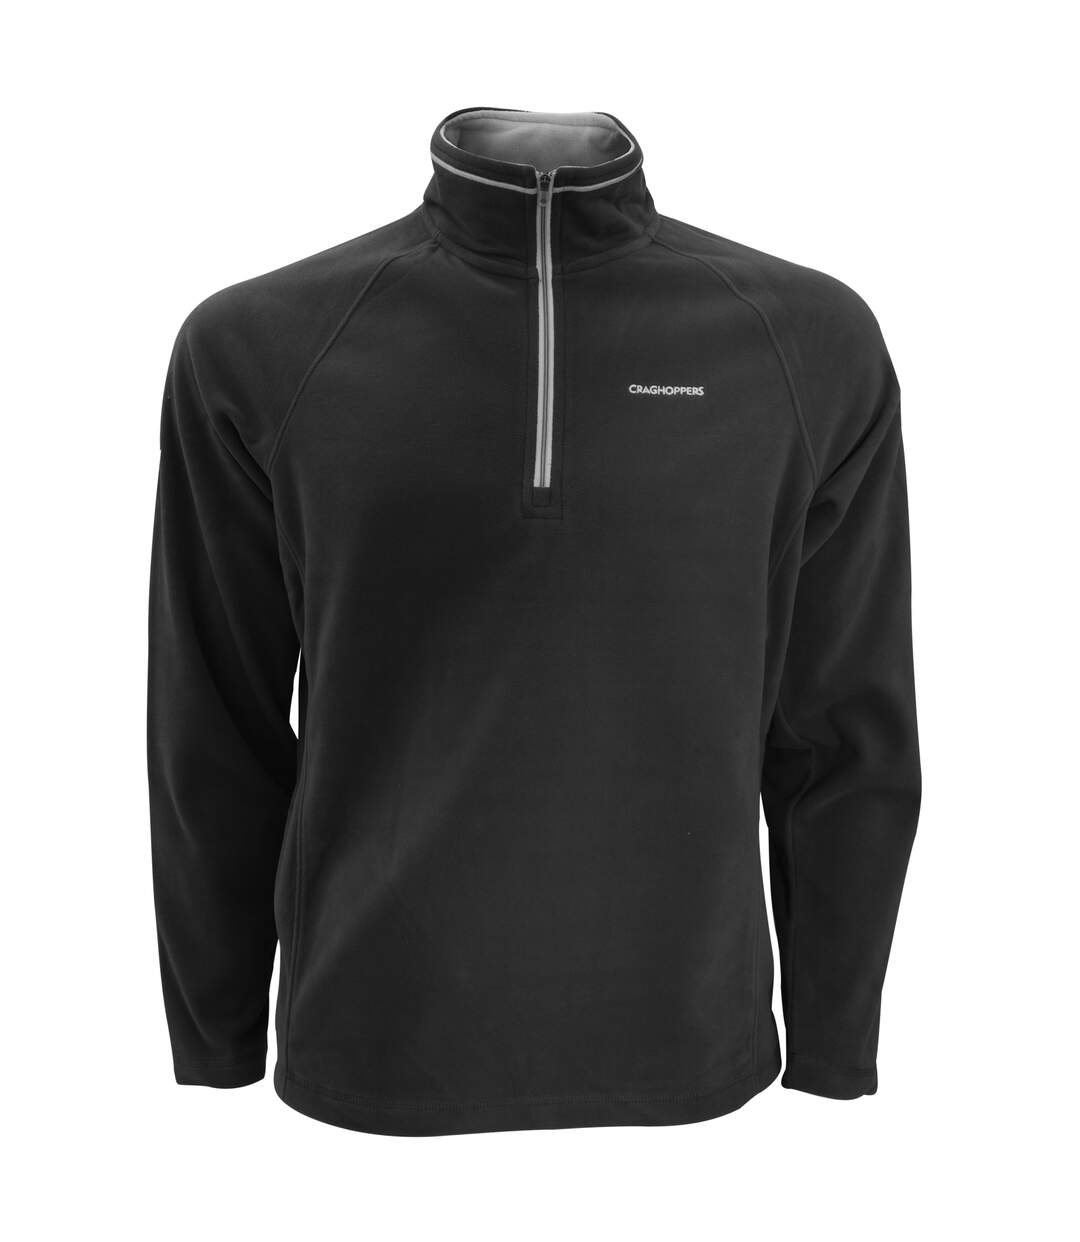 Craghoppers Mens Selby Half Zip Micro Fleece Top (Black) - UTRW3998